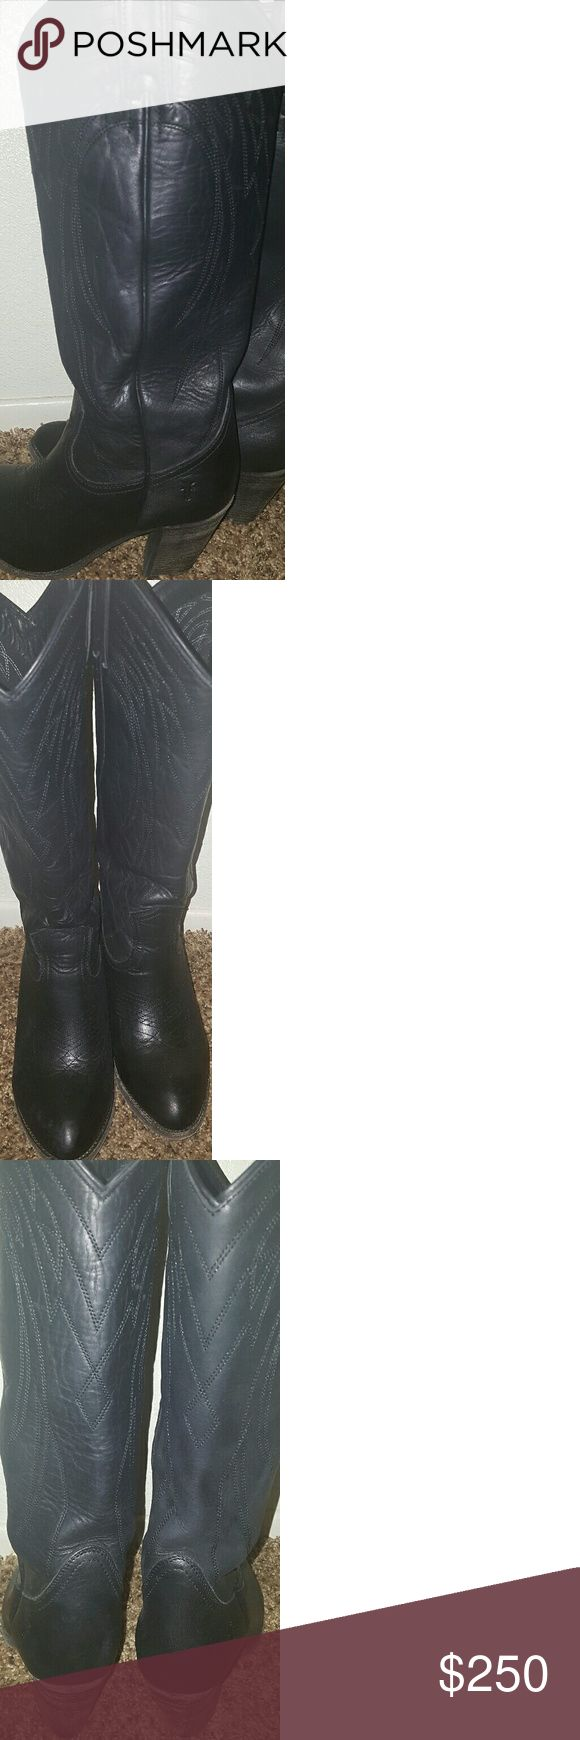 "Frye Boots SALE TODAY! Georgeous Pair of Womens Black Leather Authentic Frye Boots... Cowboy Style Llana  3"" heel.. Size 8.5 Only Worn Once.. Perfect Condition Still Look Brand New! Offer Accepted! Frye  Shoes Heeled Boots"